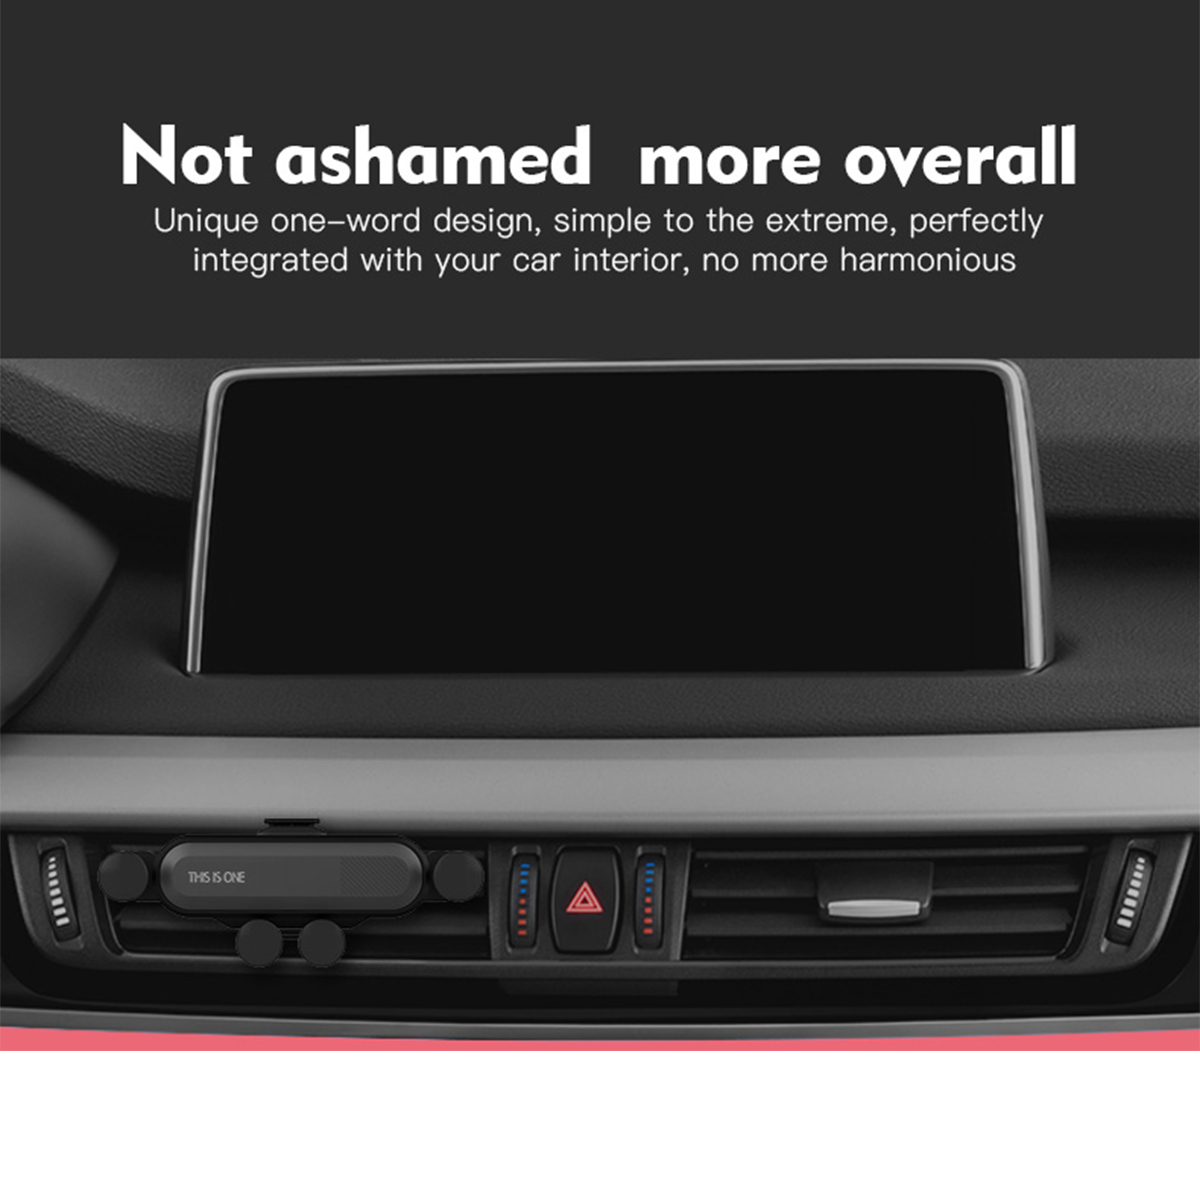 Gravity Car Mobile Phone Holder For Phone Air Vent Mount Stand Universal In Car Smartphone Cell Support Phone Holder Pakistan